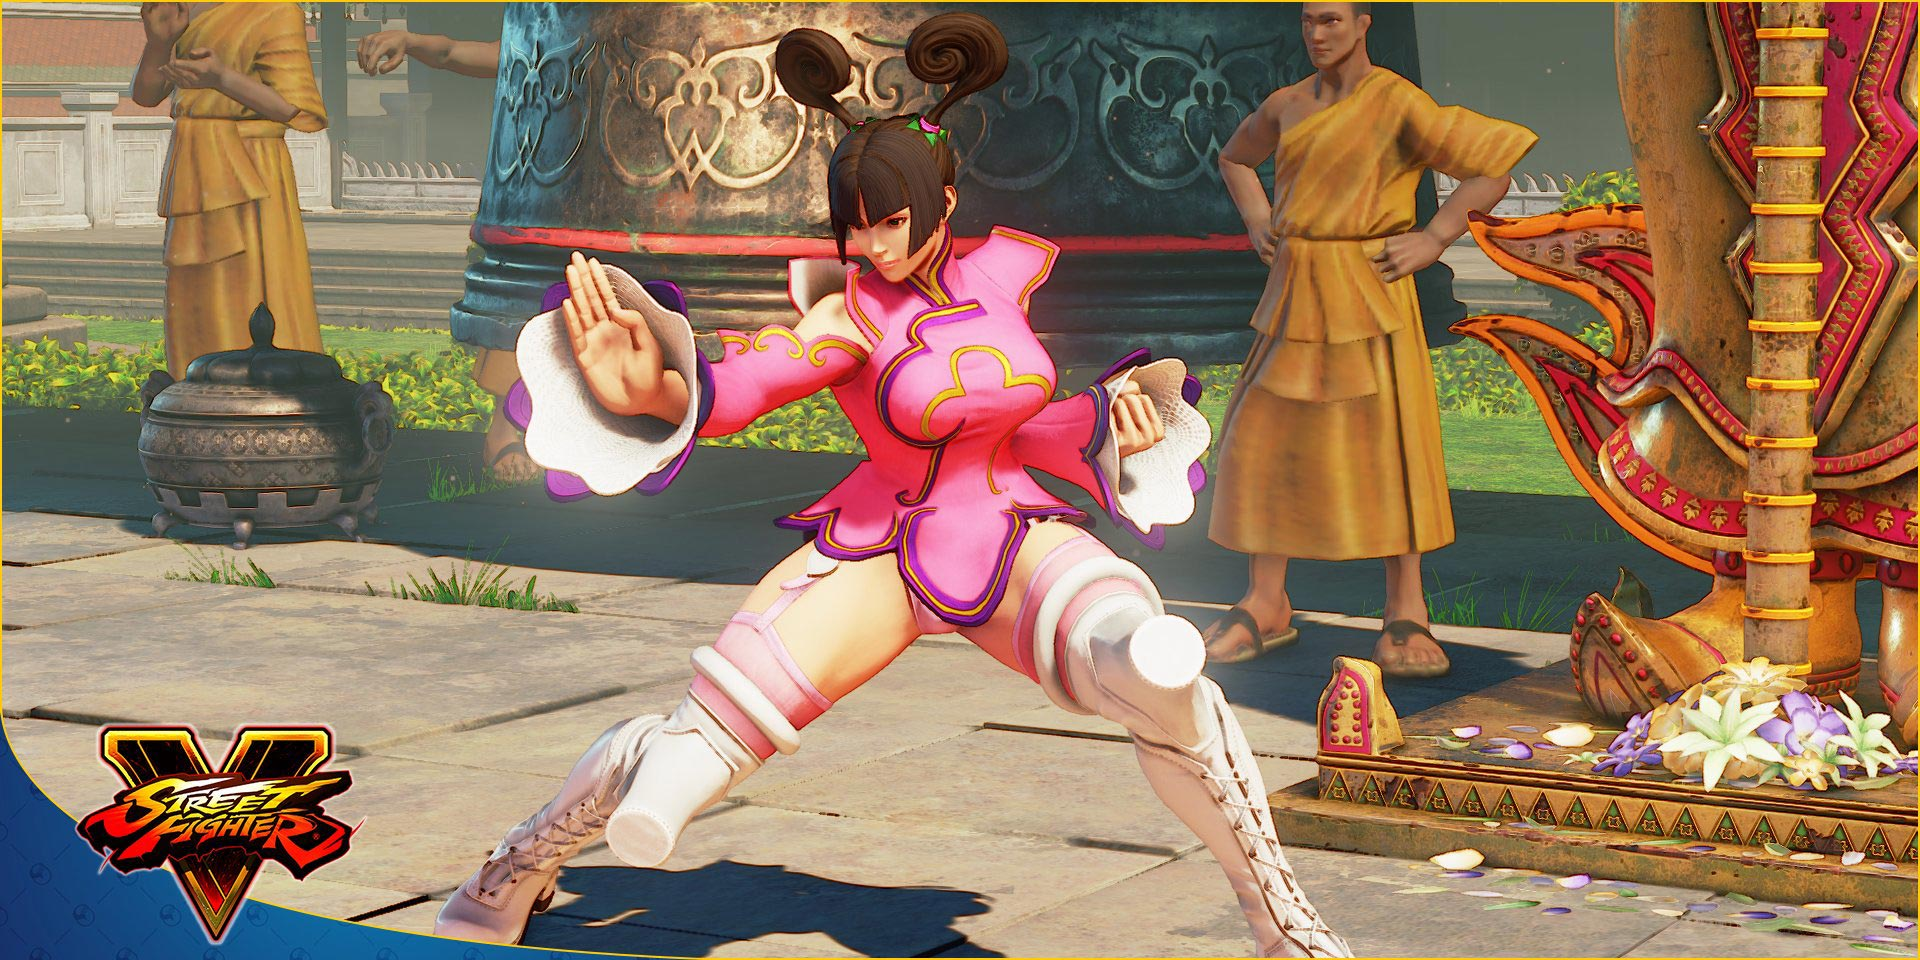 More returning SF5 costumes 5 out of 5 image gallery